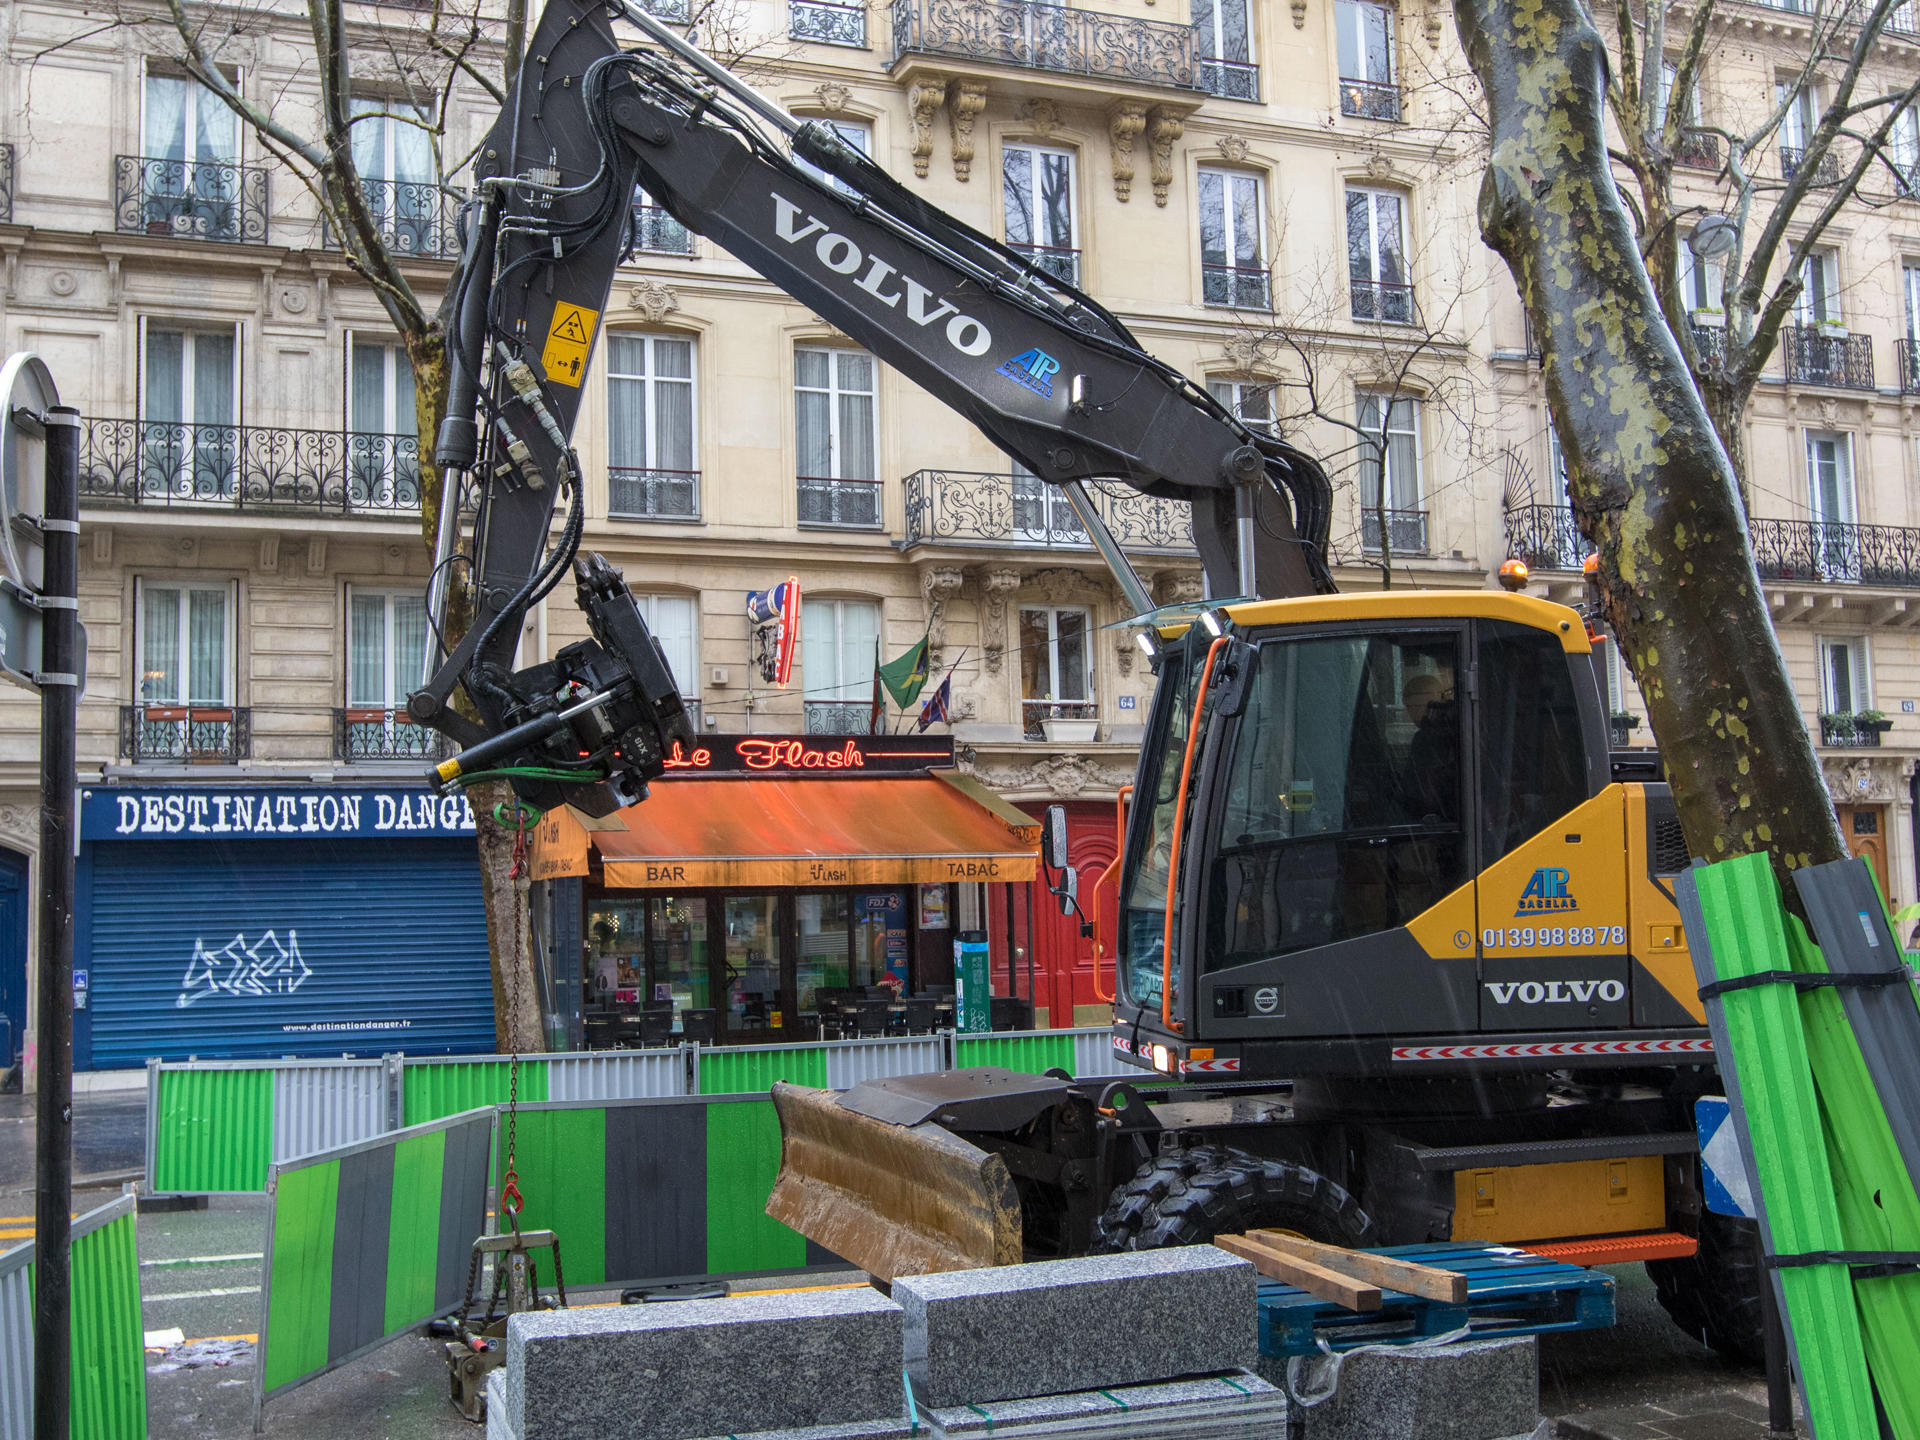 grand-paris-demonstrates-volvo-groups-ability-to-support-worlds-largest-projects-02-1920